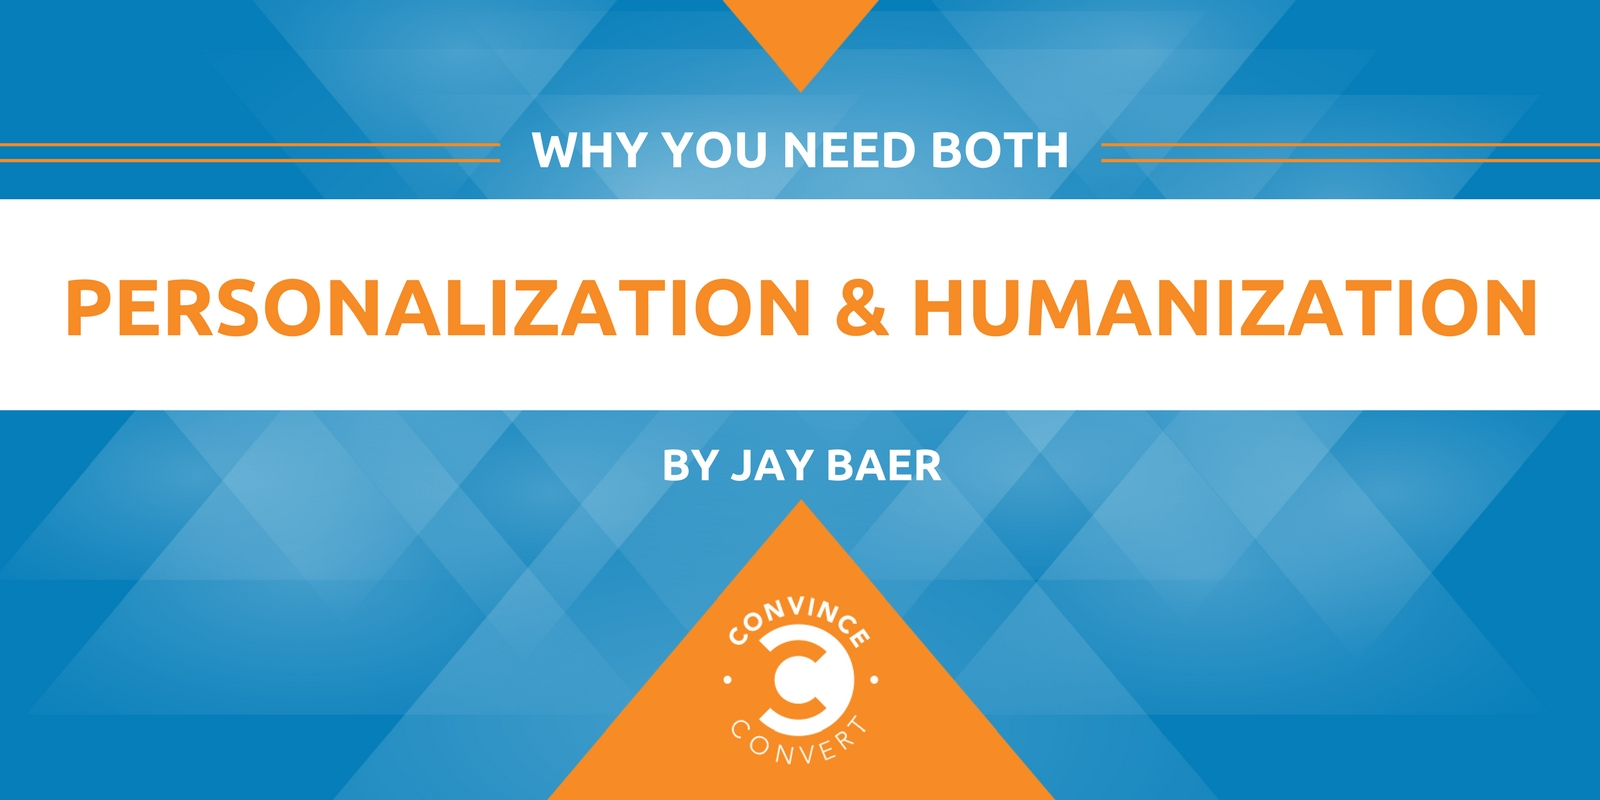 Why You Need Both Personalization and Humanization